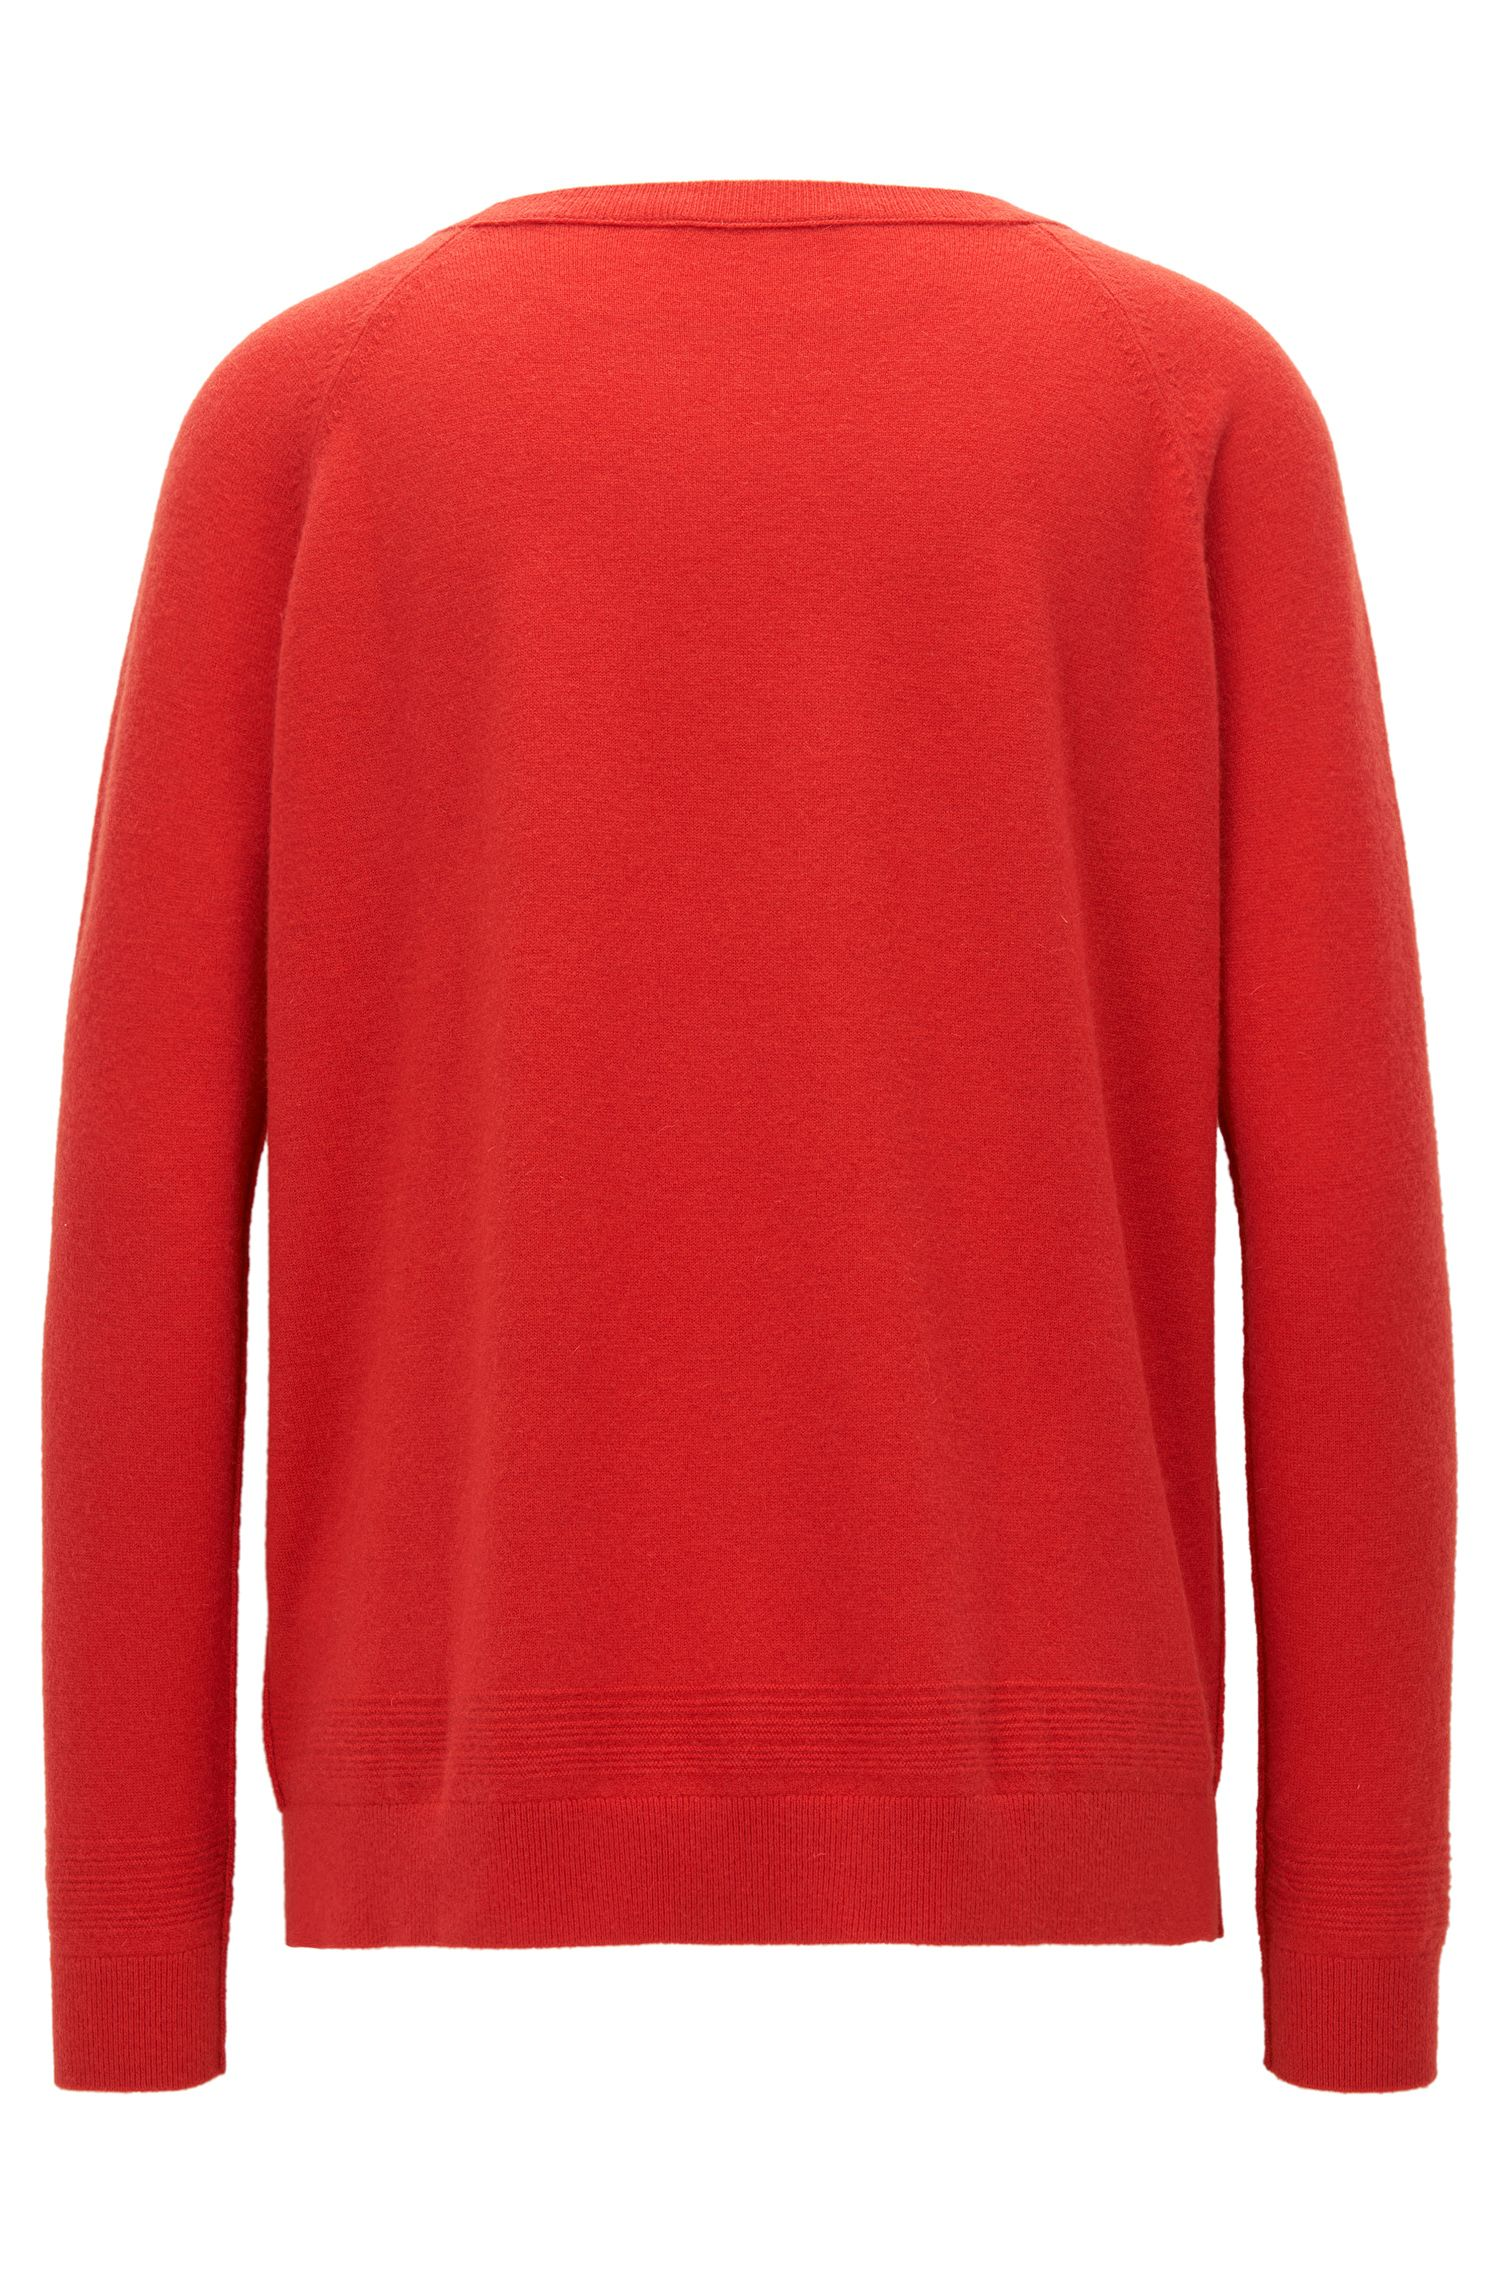 Raglan-sleeved sweater in a cashmere-wool blend